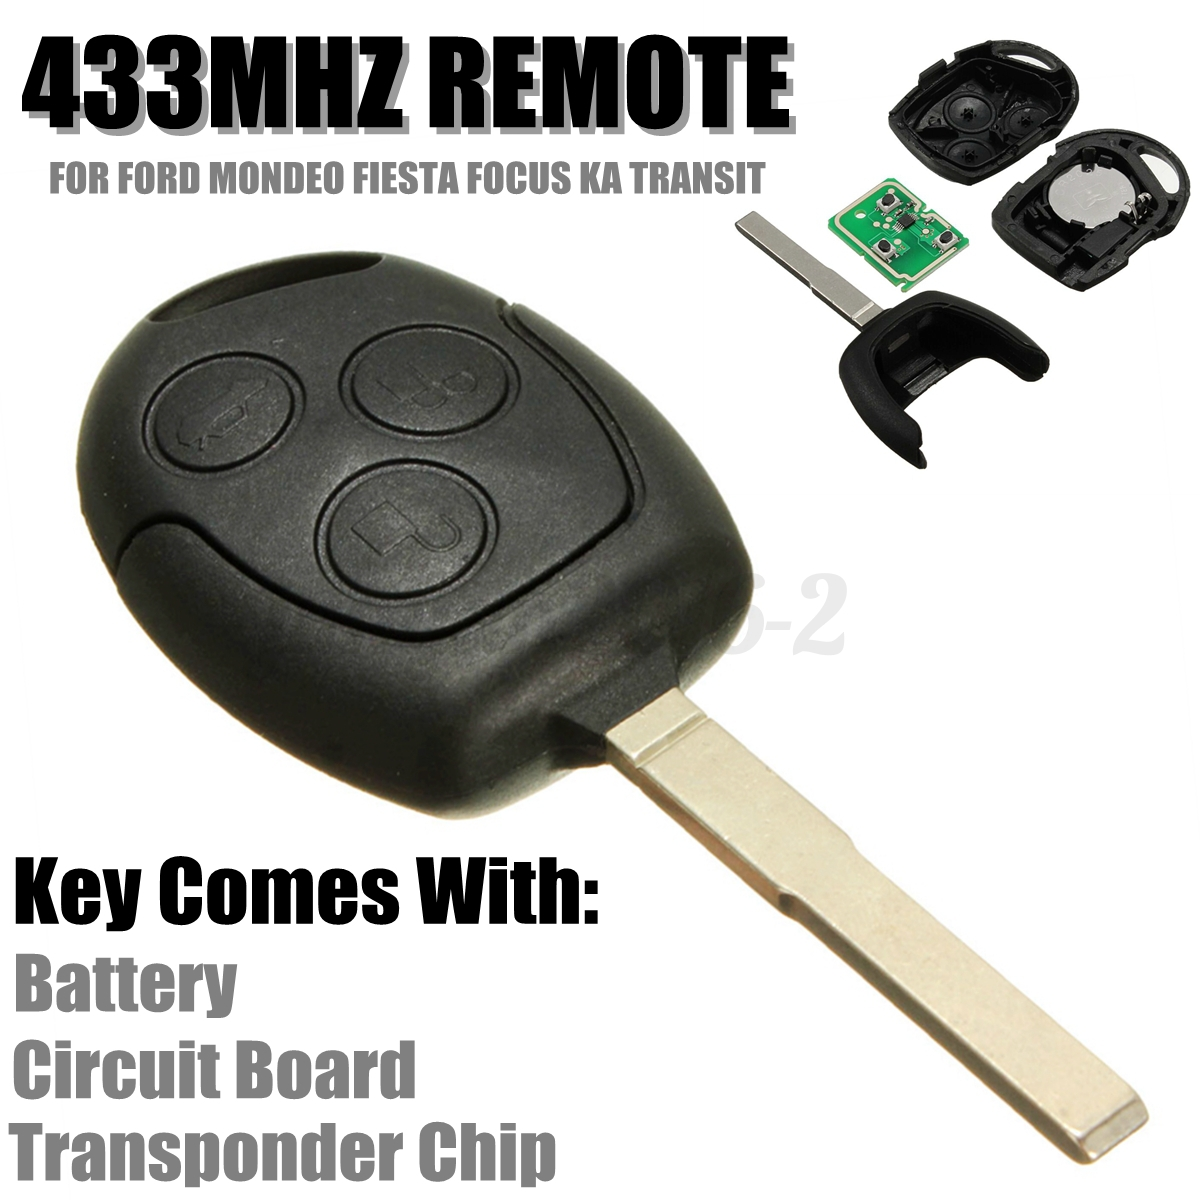 3 button 433mhz remote entry key fob for ford mondeo. Black Bedroom Furniture Sets. Home Design Ideas